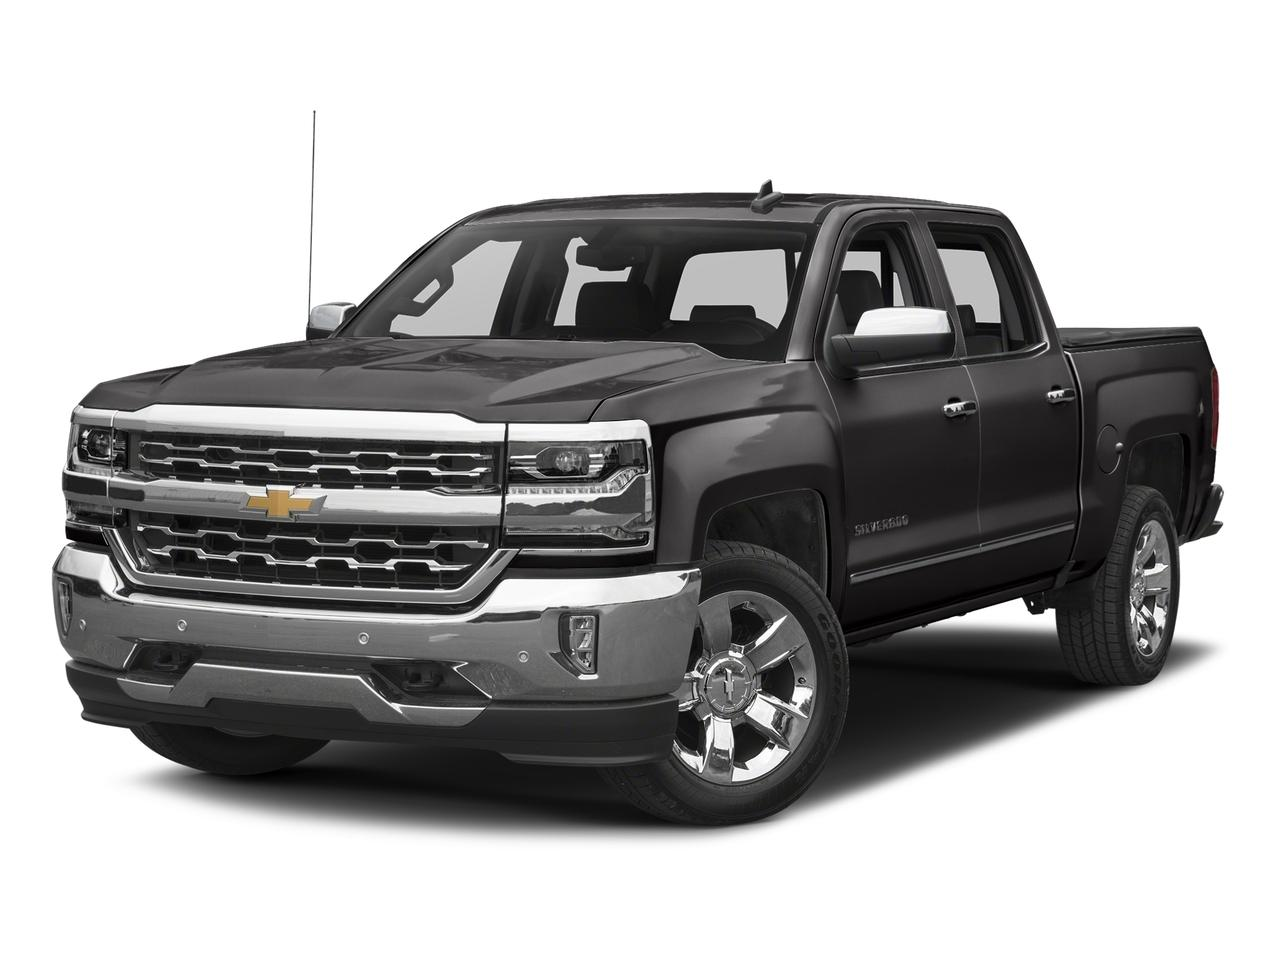 2017 Chevrolet Silverado 1500 Vehicle Photo in Lowell, IN 46356